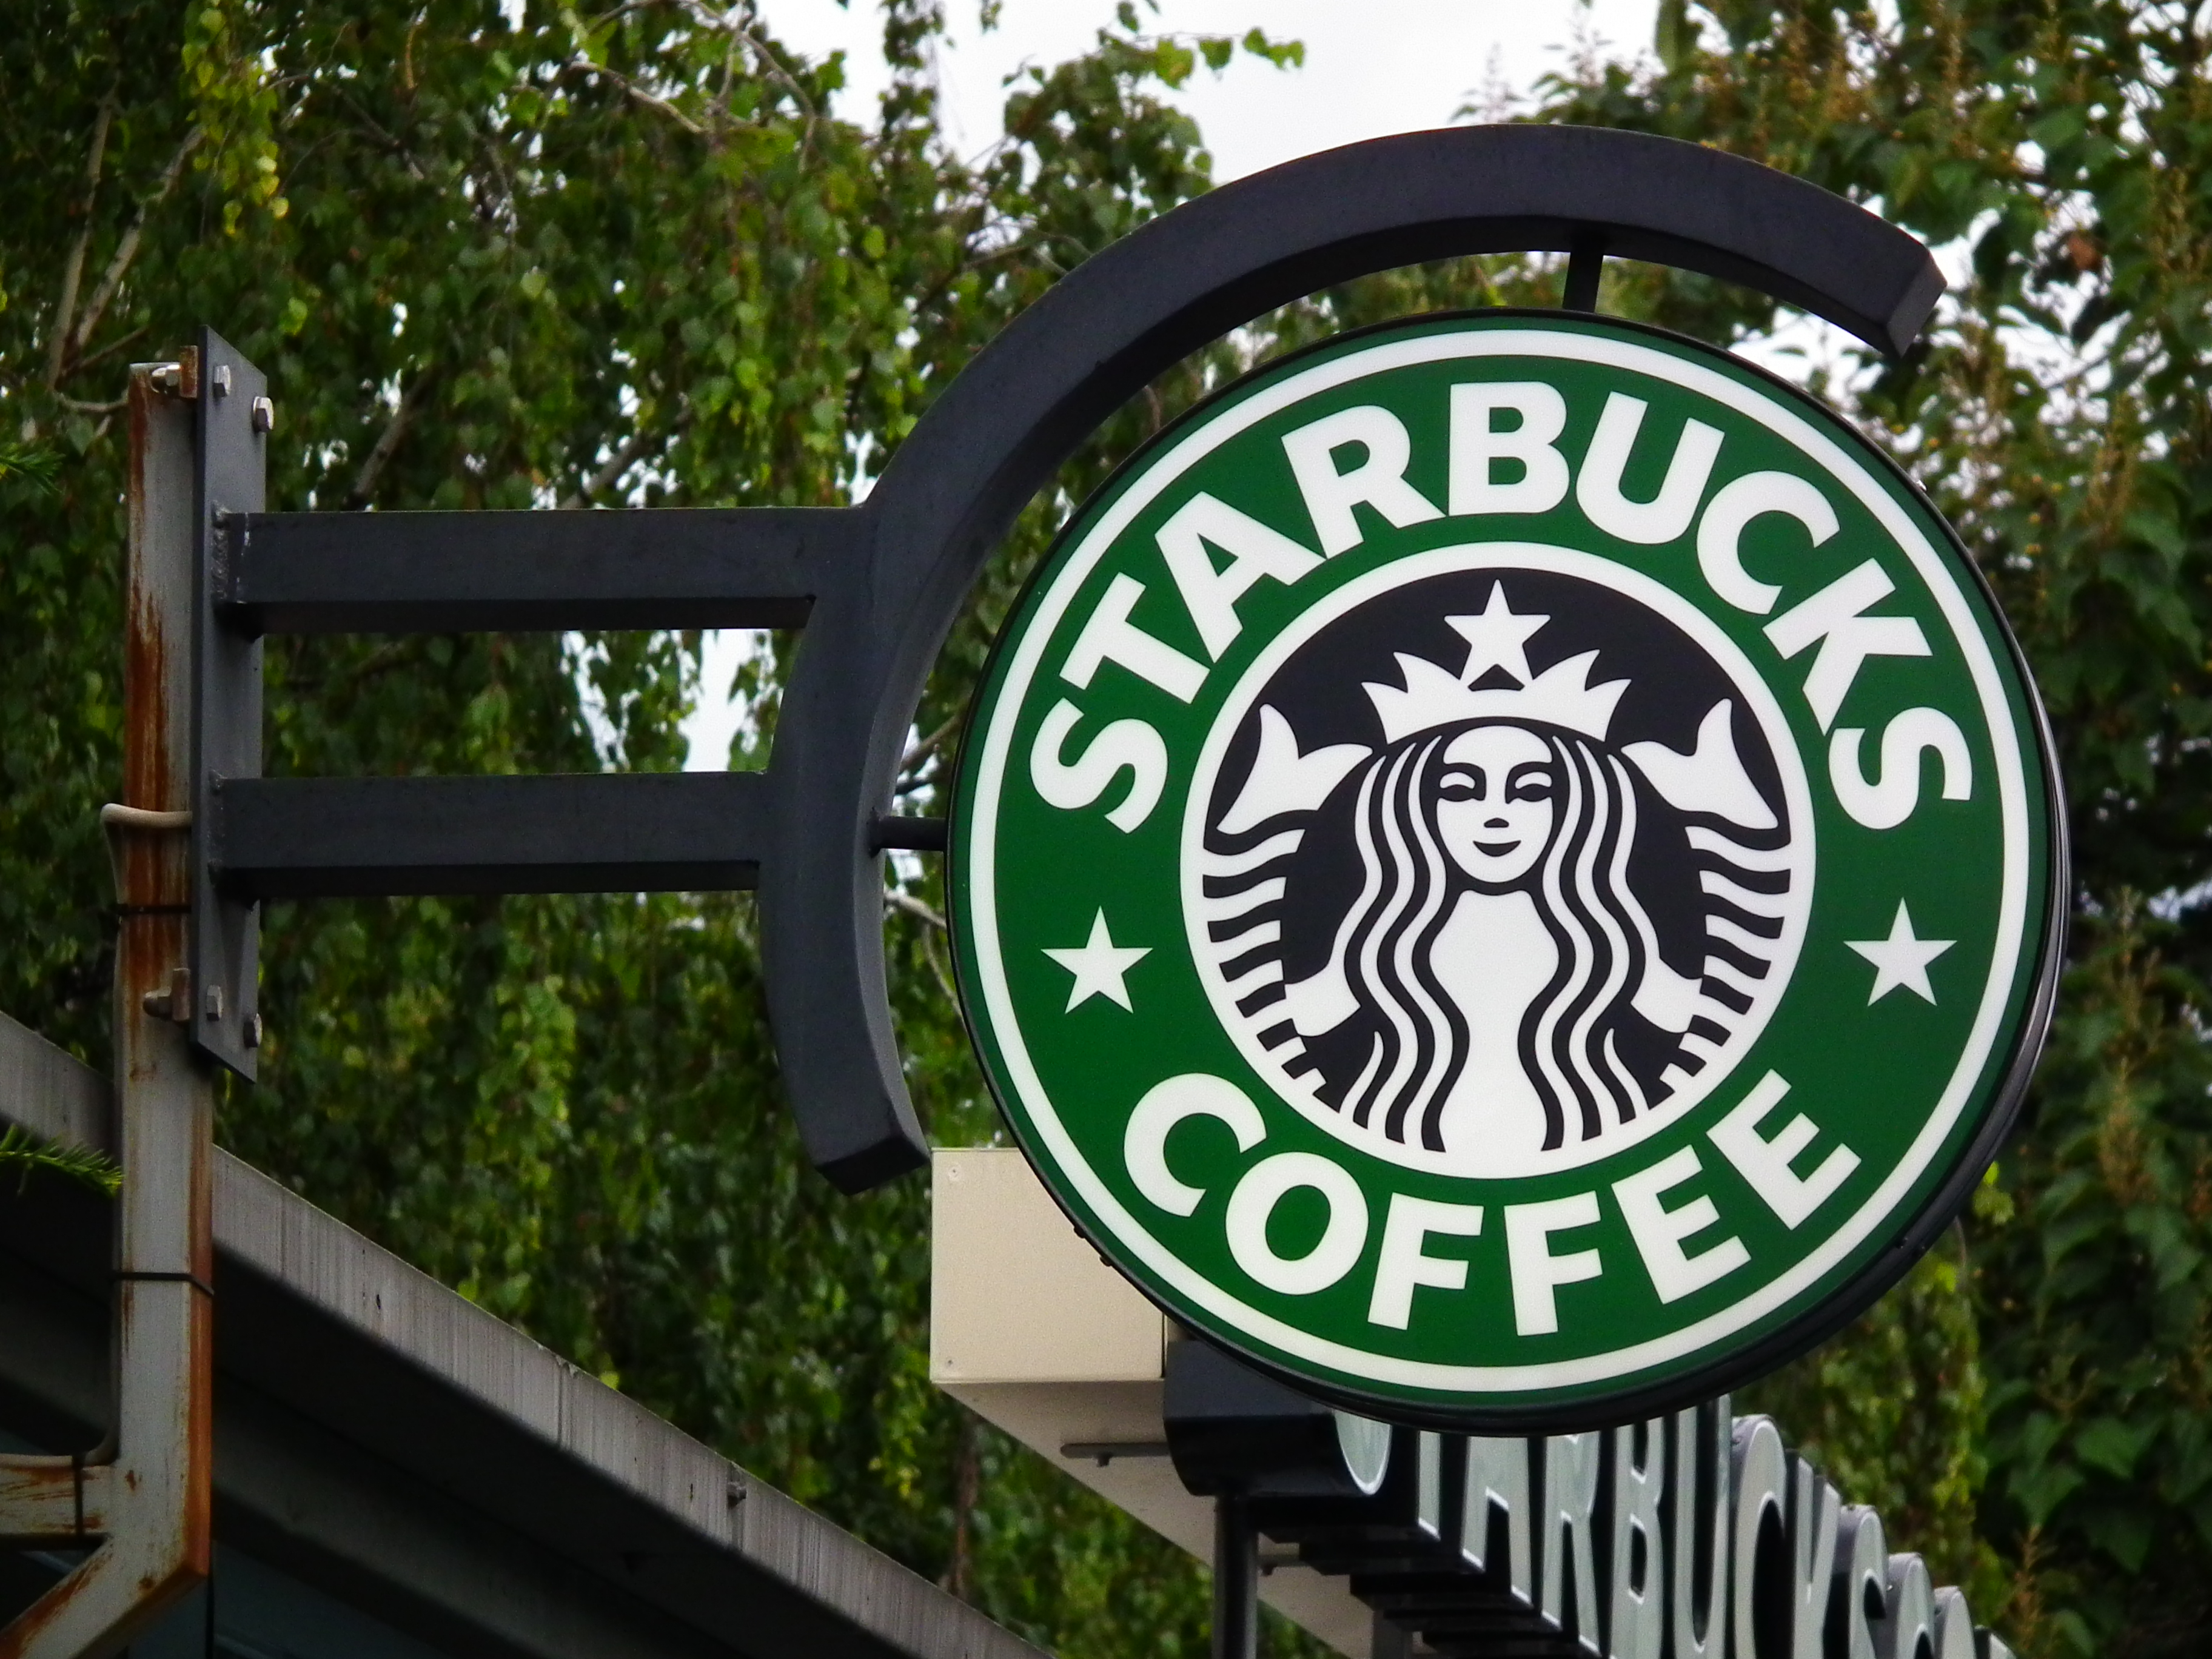 How much does a Starbucks franchise cost? [Image Credit: Wikimedia Commons]